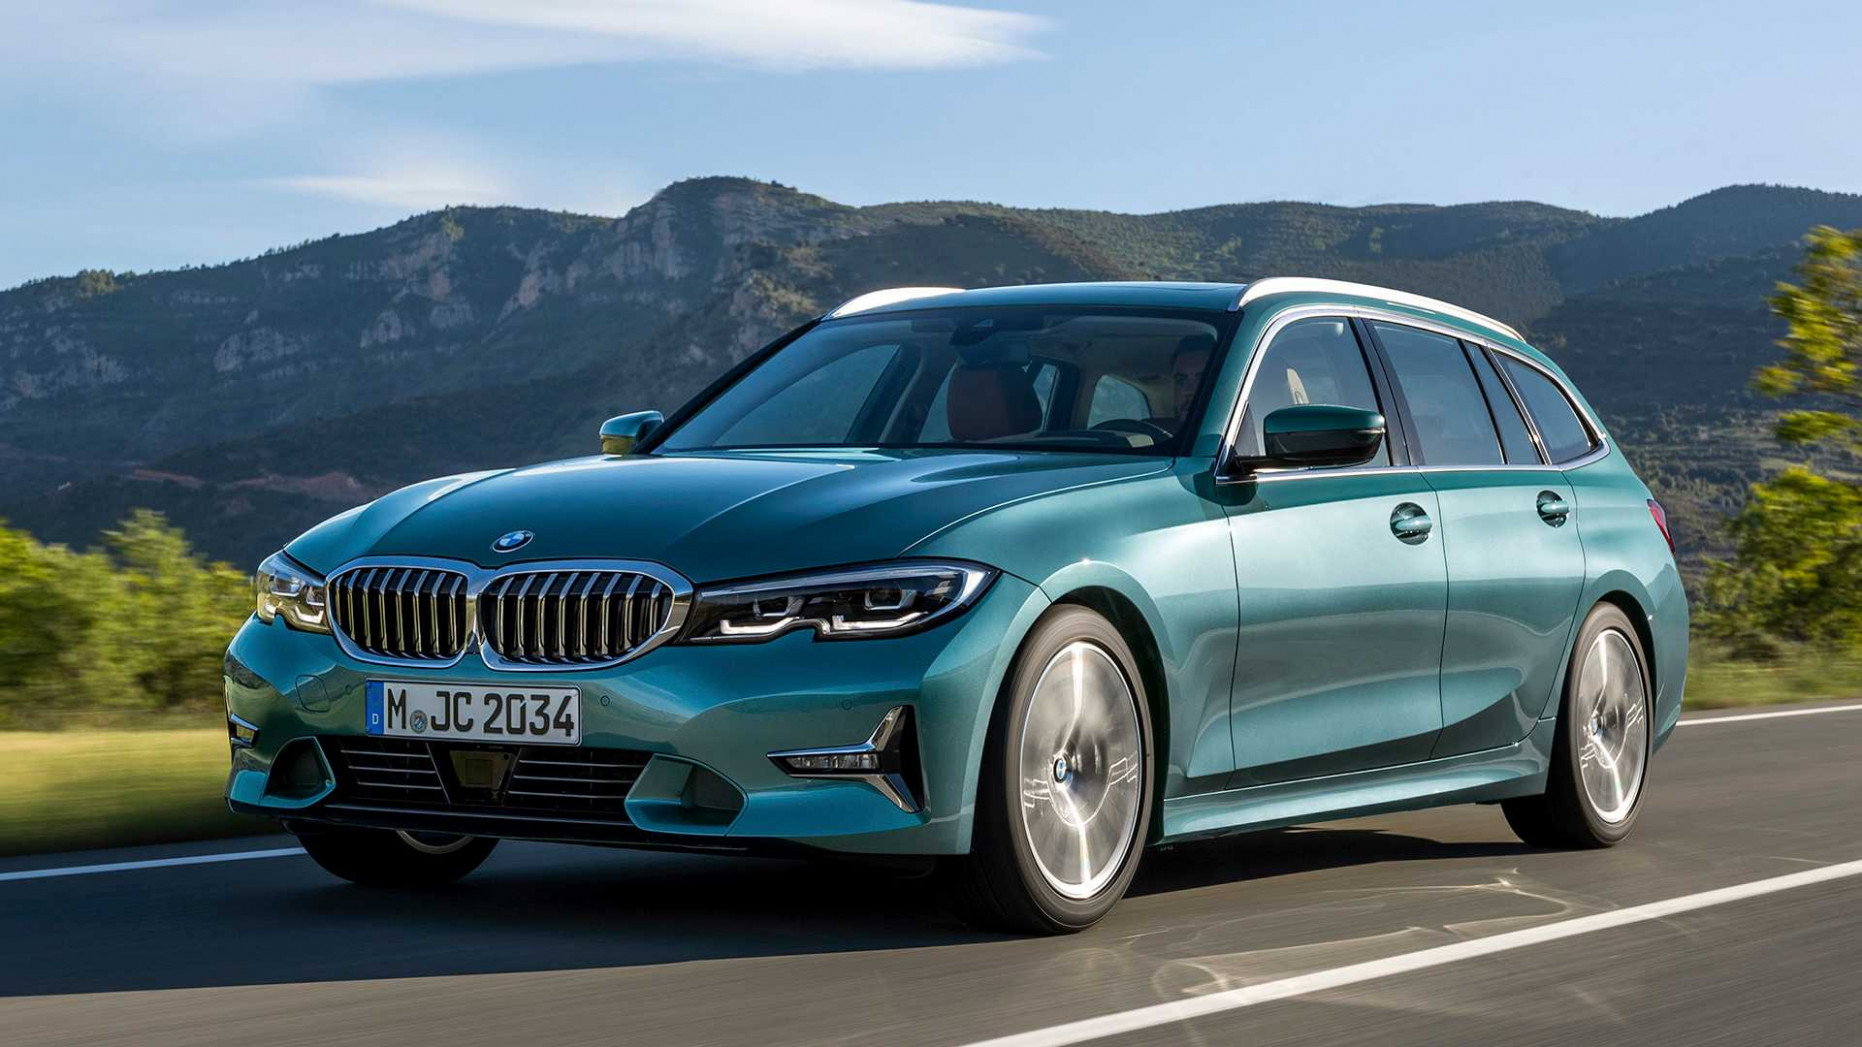 11 BMW 11 Series Touring Debuts Its Long Roof Lines For Euro Buyers